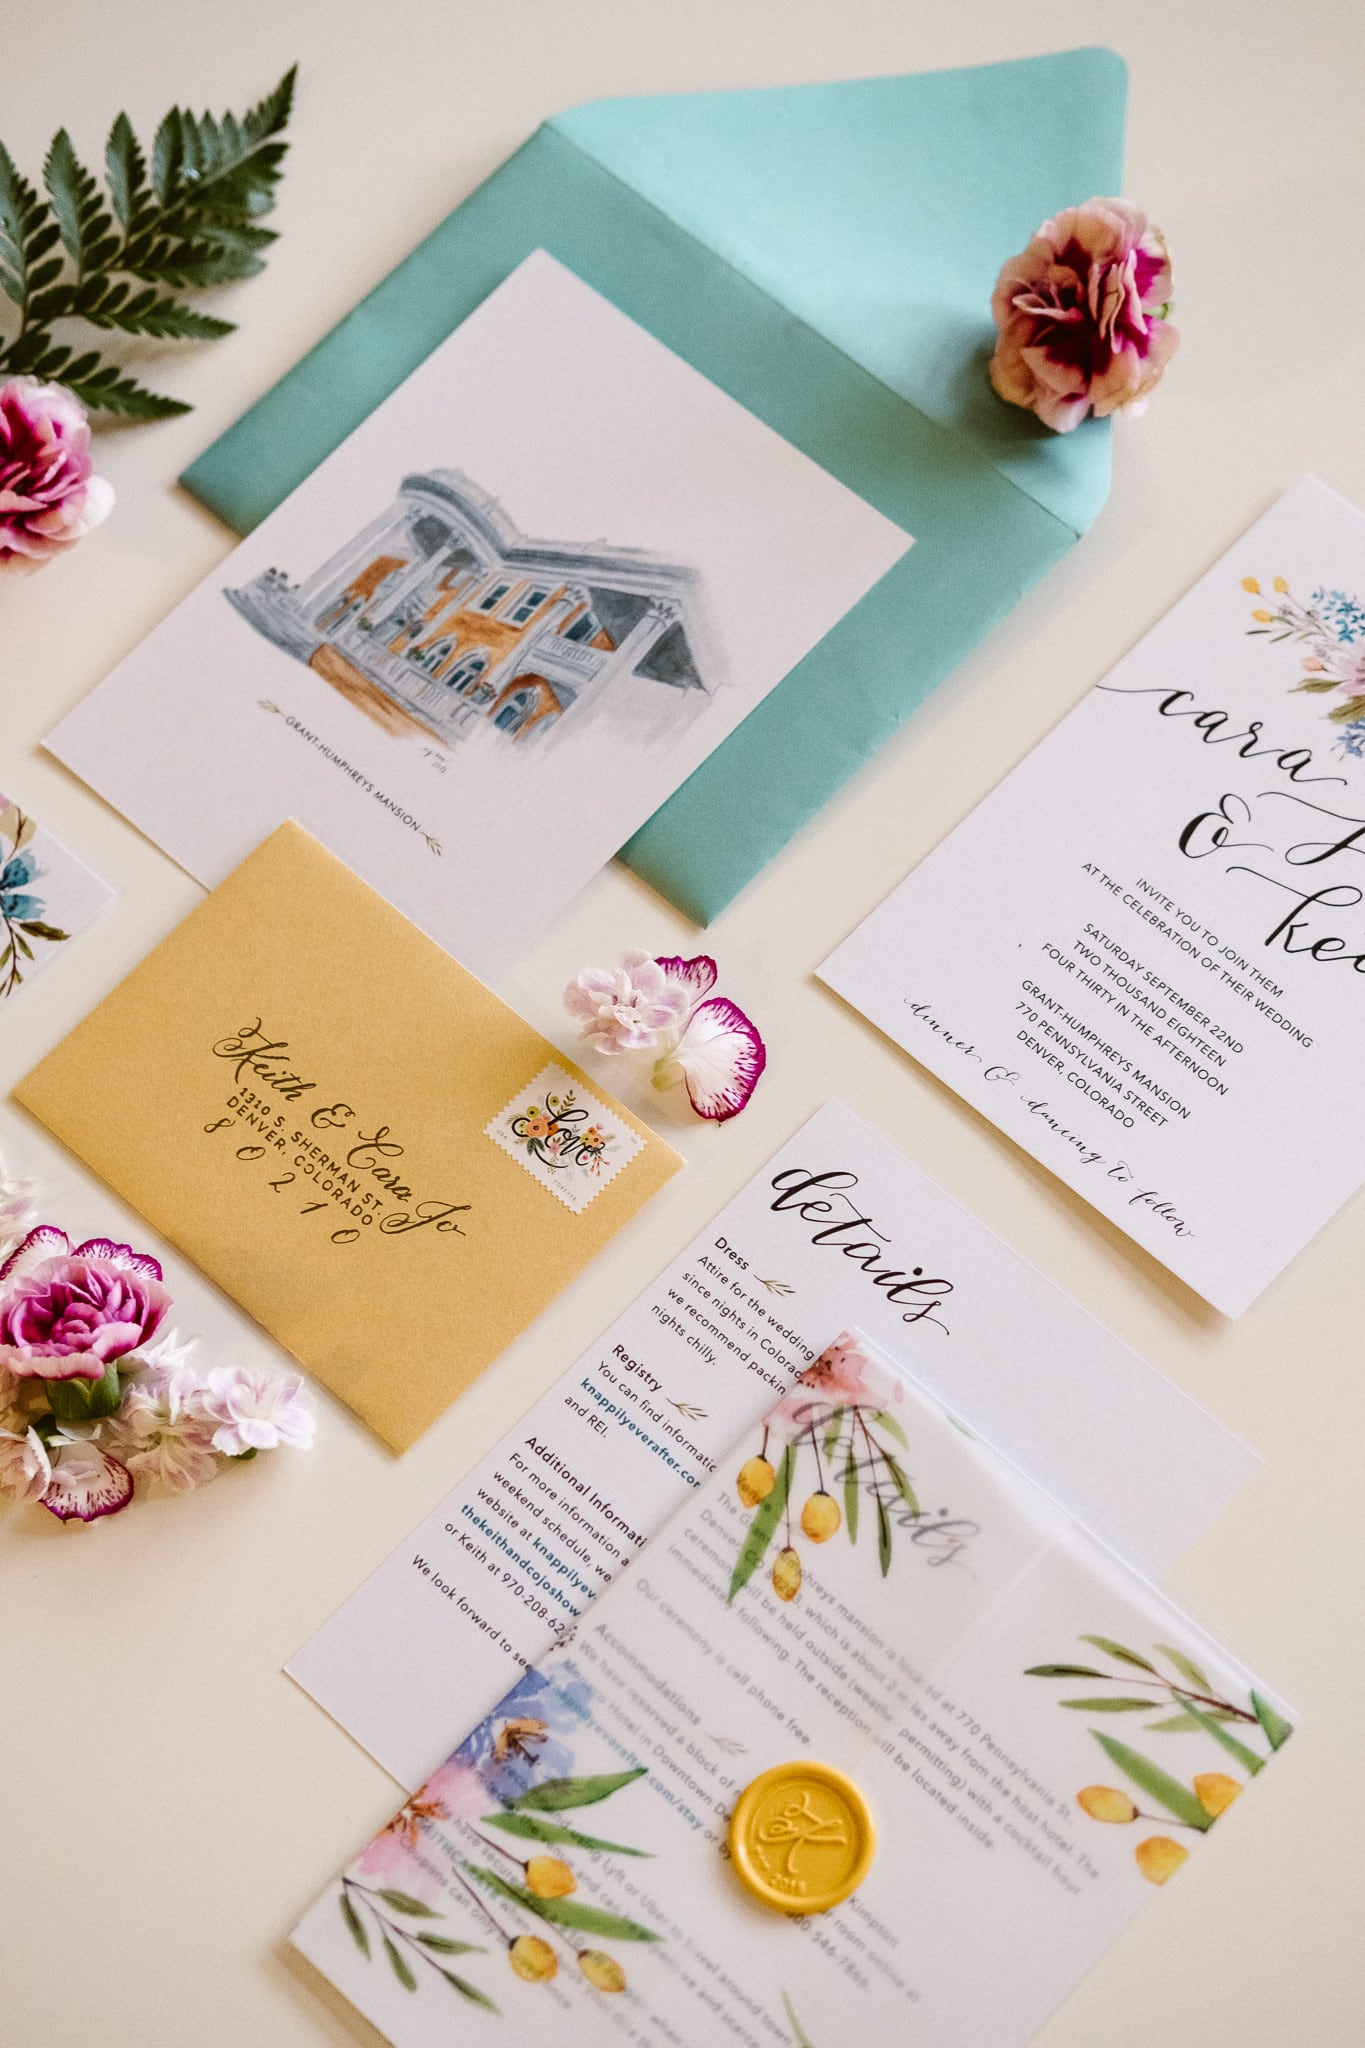 Grant Humphreys Mansion Wedding Photographer, Denver wedding photographer, Colorado wedding photographer, watercolor wedding invitations, hand painted wedding stationery